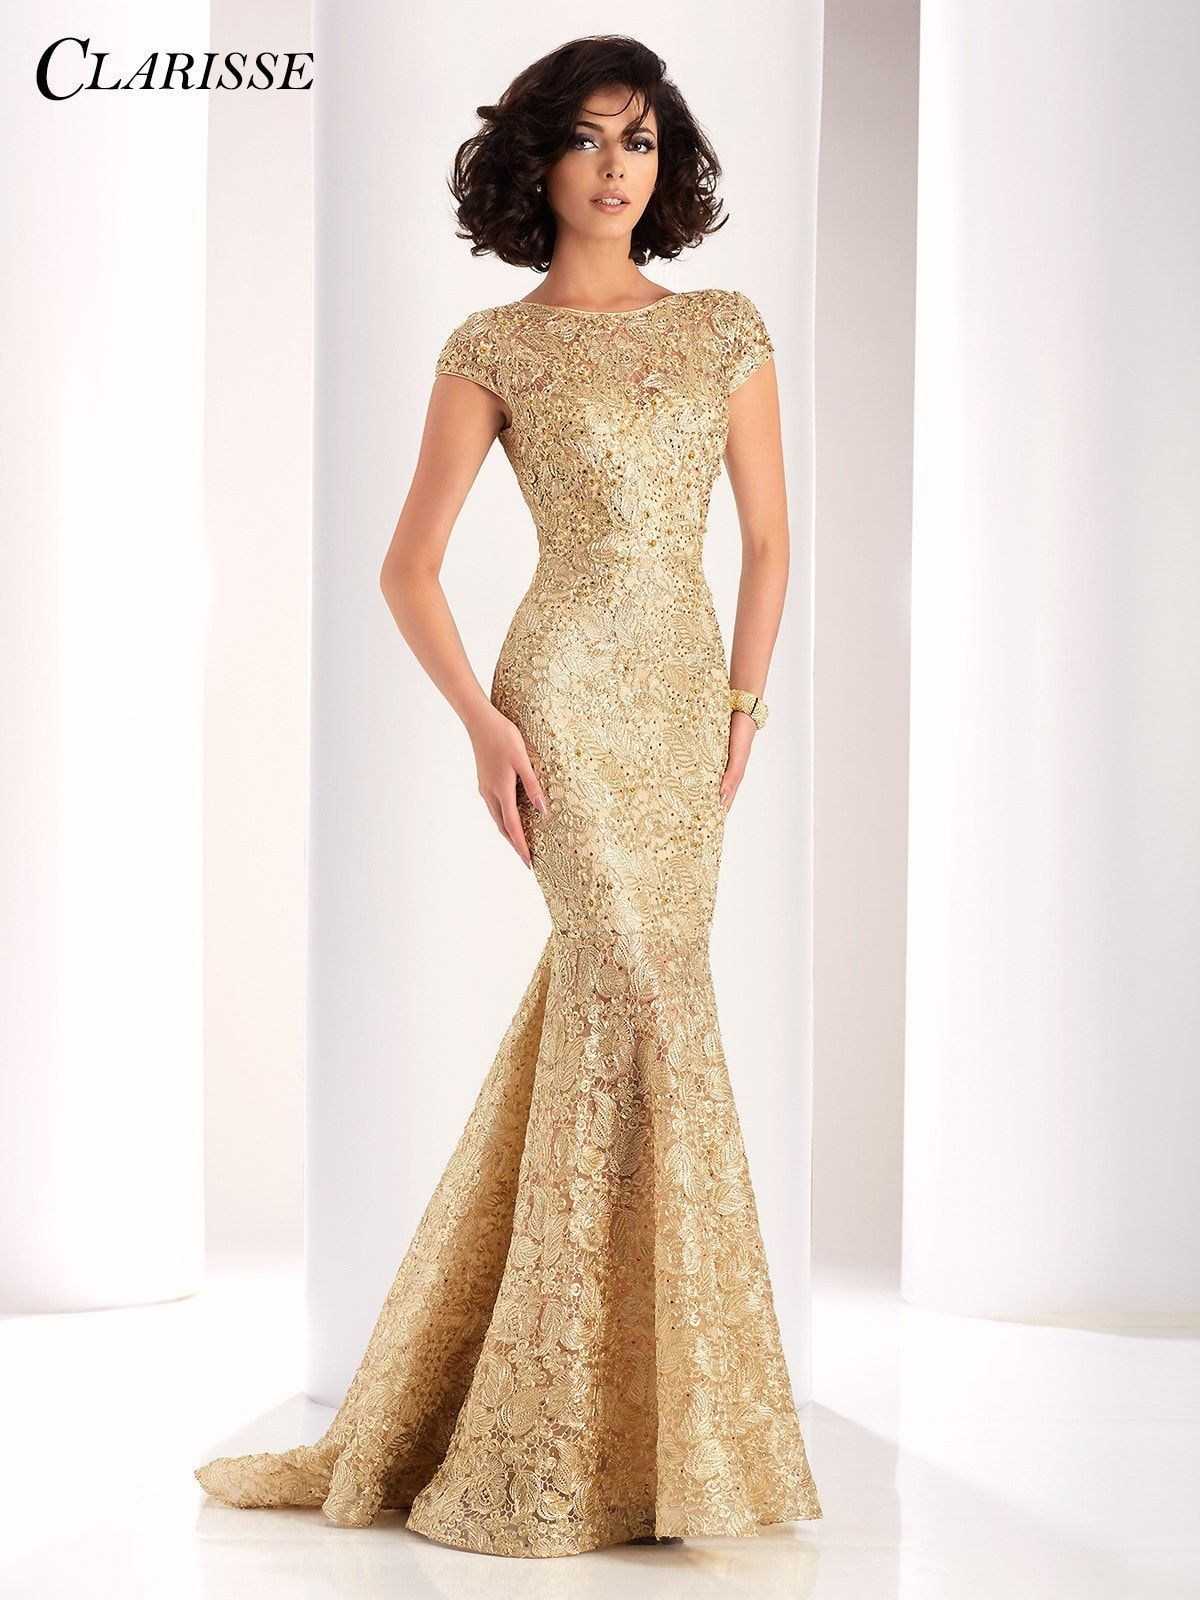 Clarisse couture gold high neckline open back prom dress